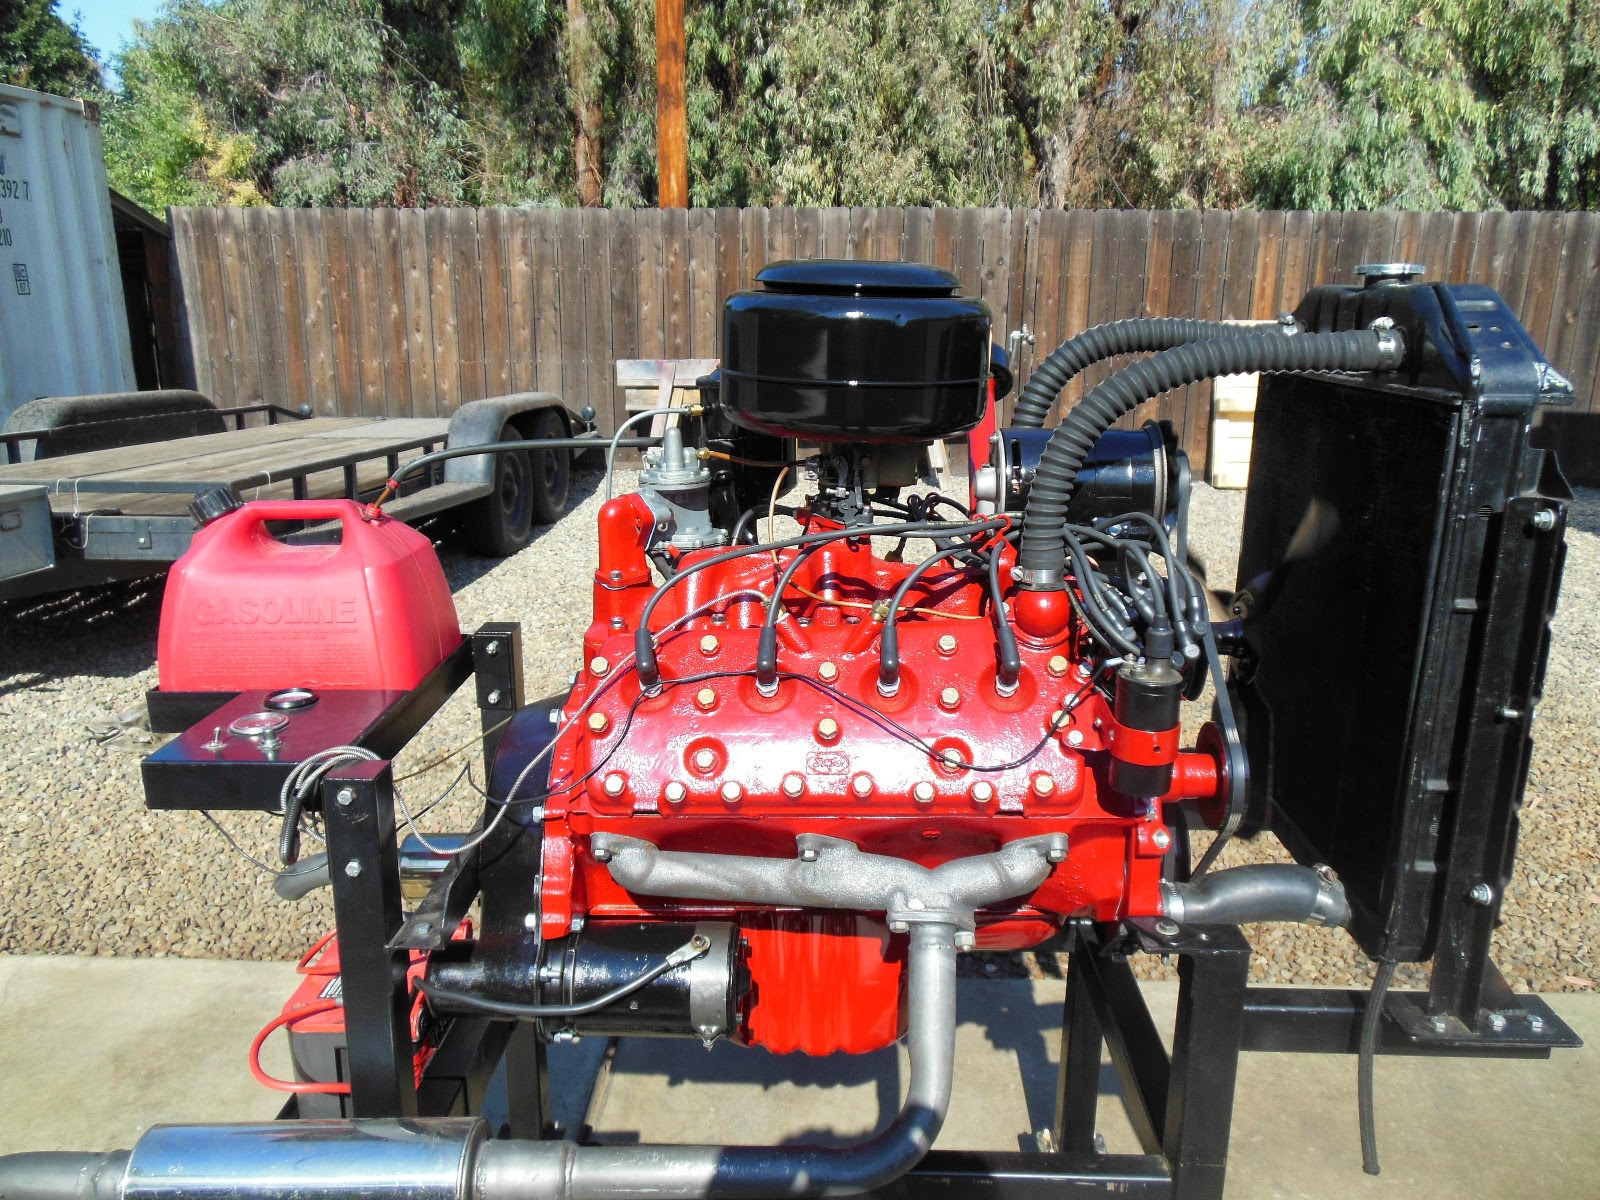 Flathead Ford Engines Internal Diagrams | Wiring Library